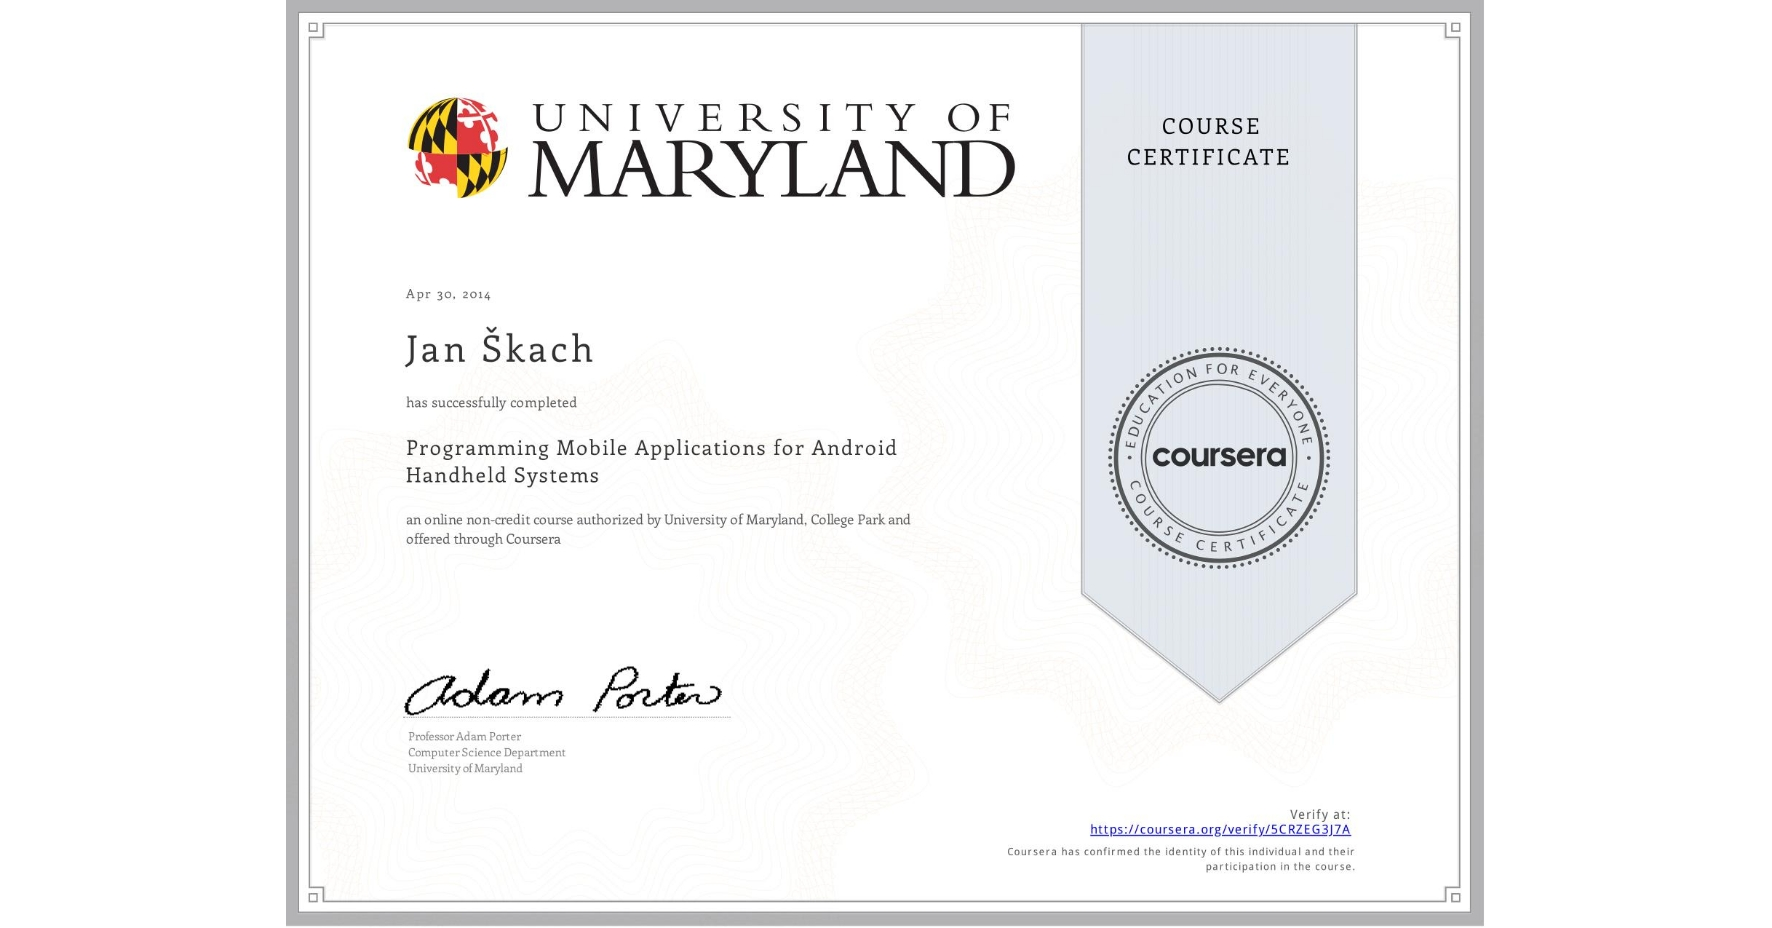 View certificate for Jan Škach, Programming Mobile Applications for Android Handheld Systems, an online non-credit course authorized by University of Maryland, College Park and offered through Coursera